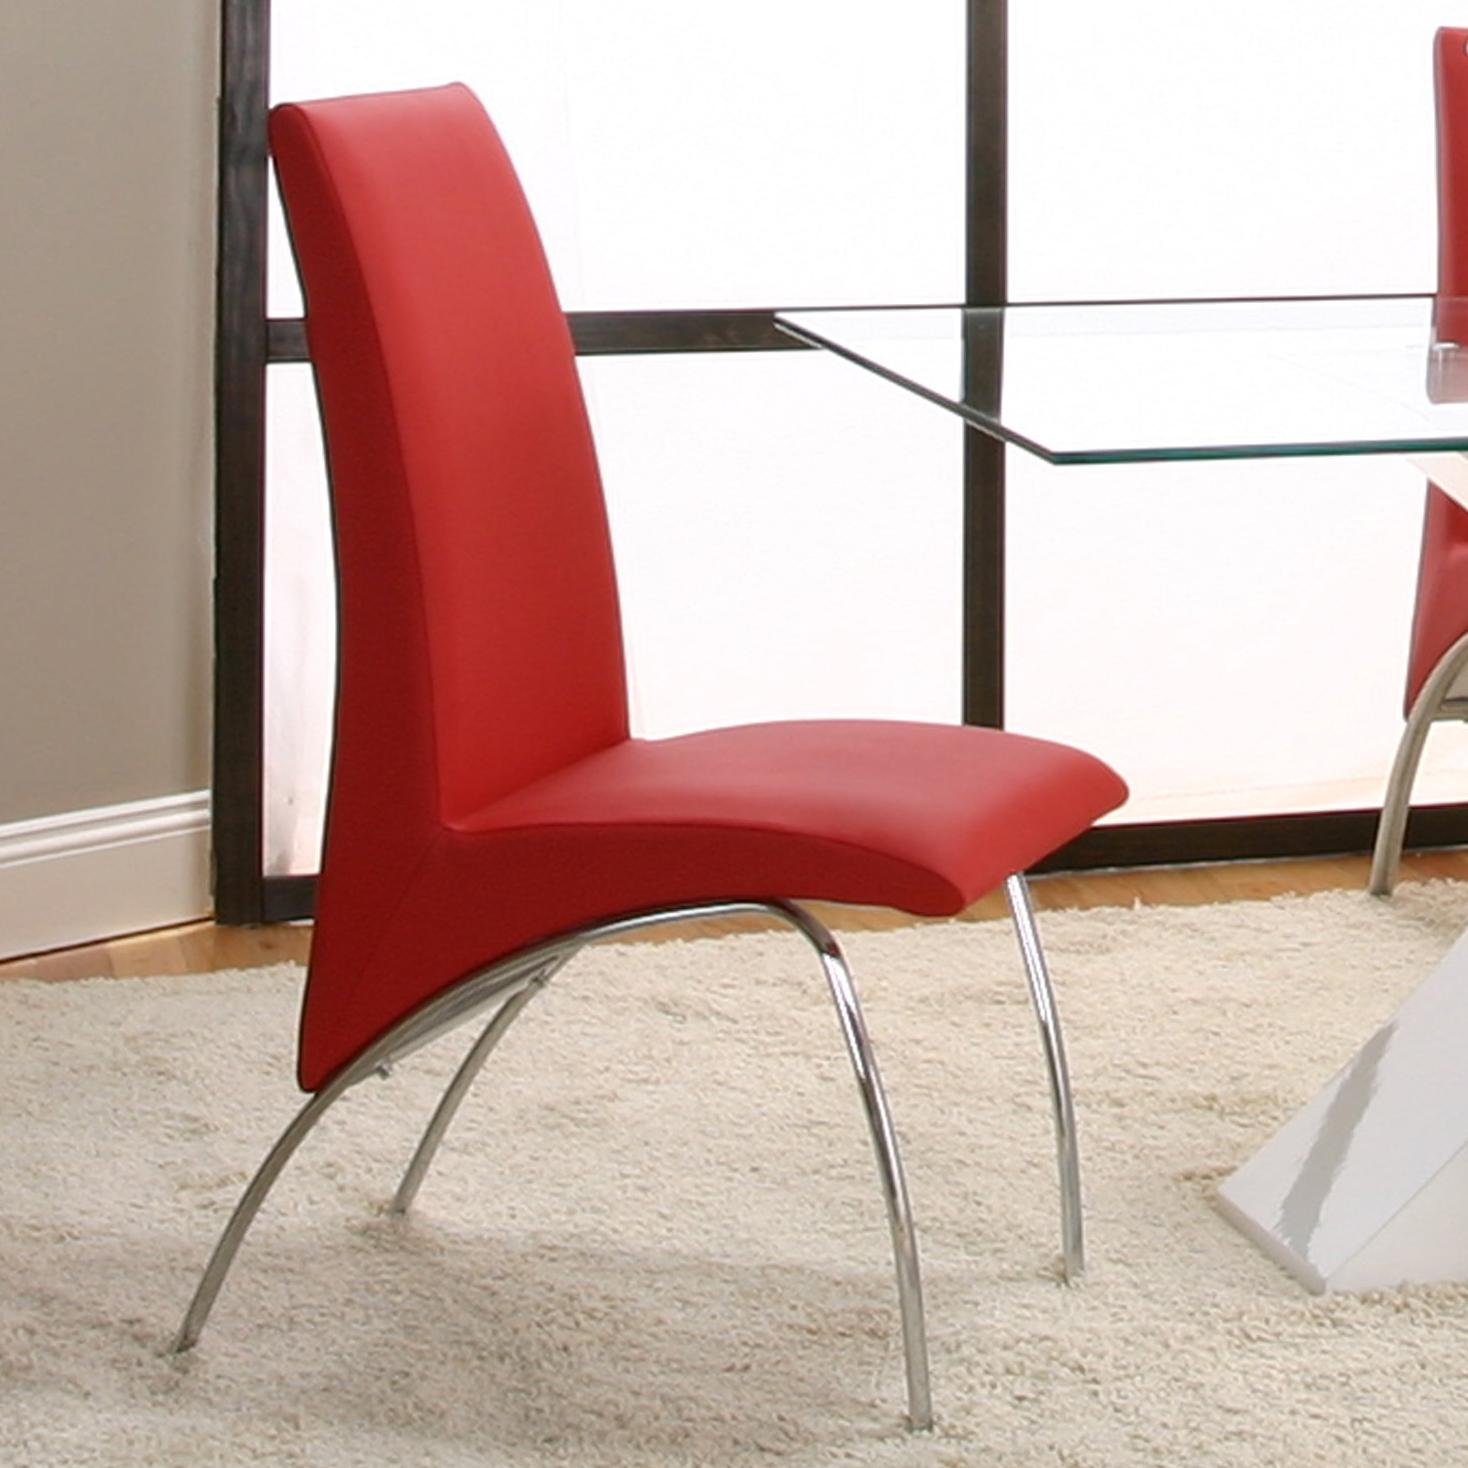 5 Piece Rectangular Glass Top Table with Black Base and Red Chairs